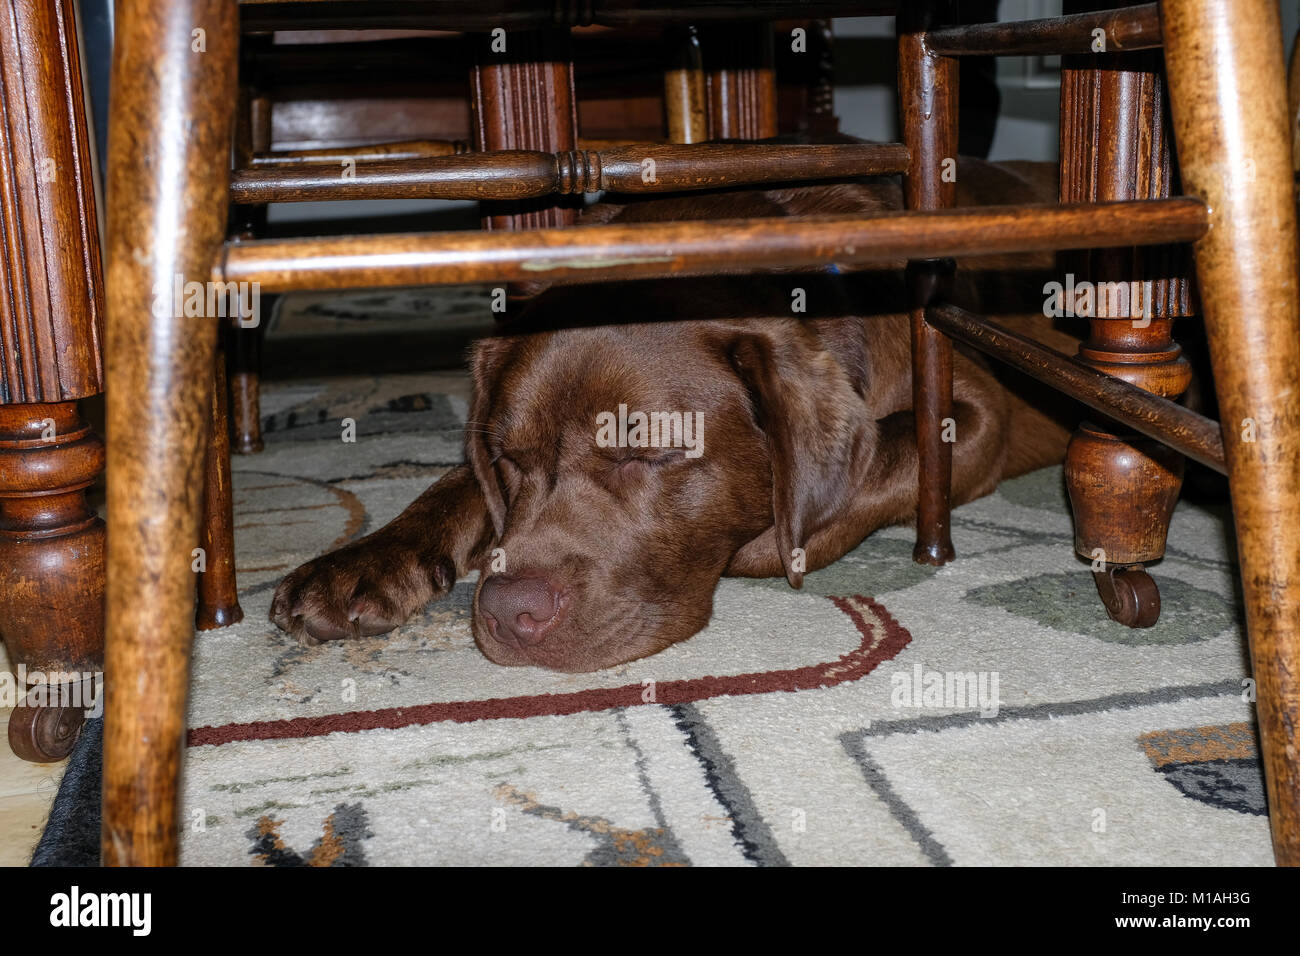 Tired chocolate Labrador Retriever sleeping under the dining room table. - Stock Image